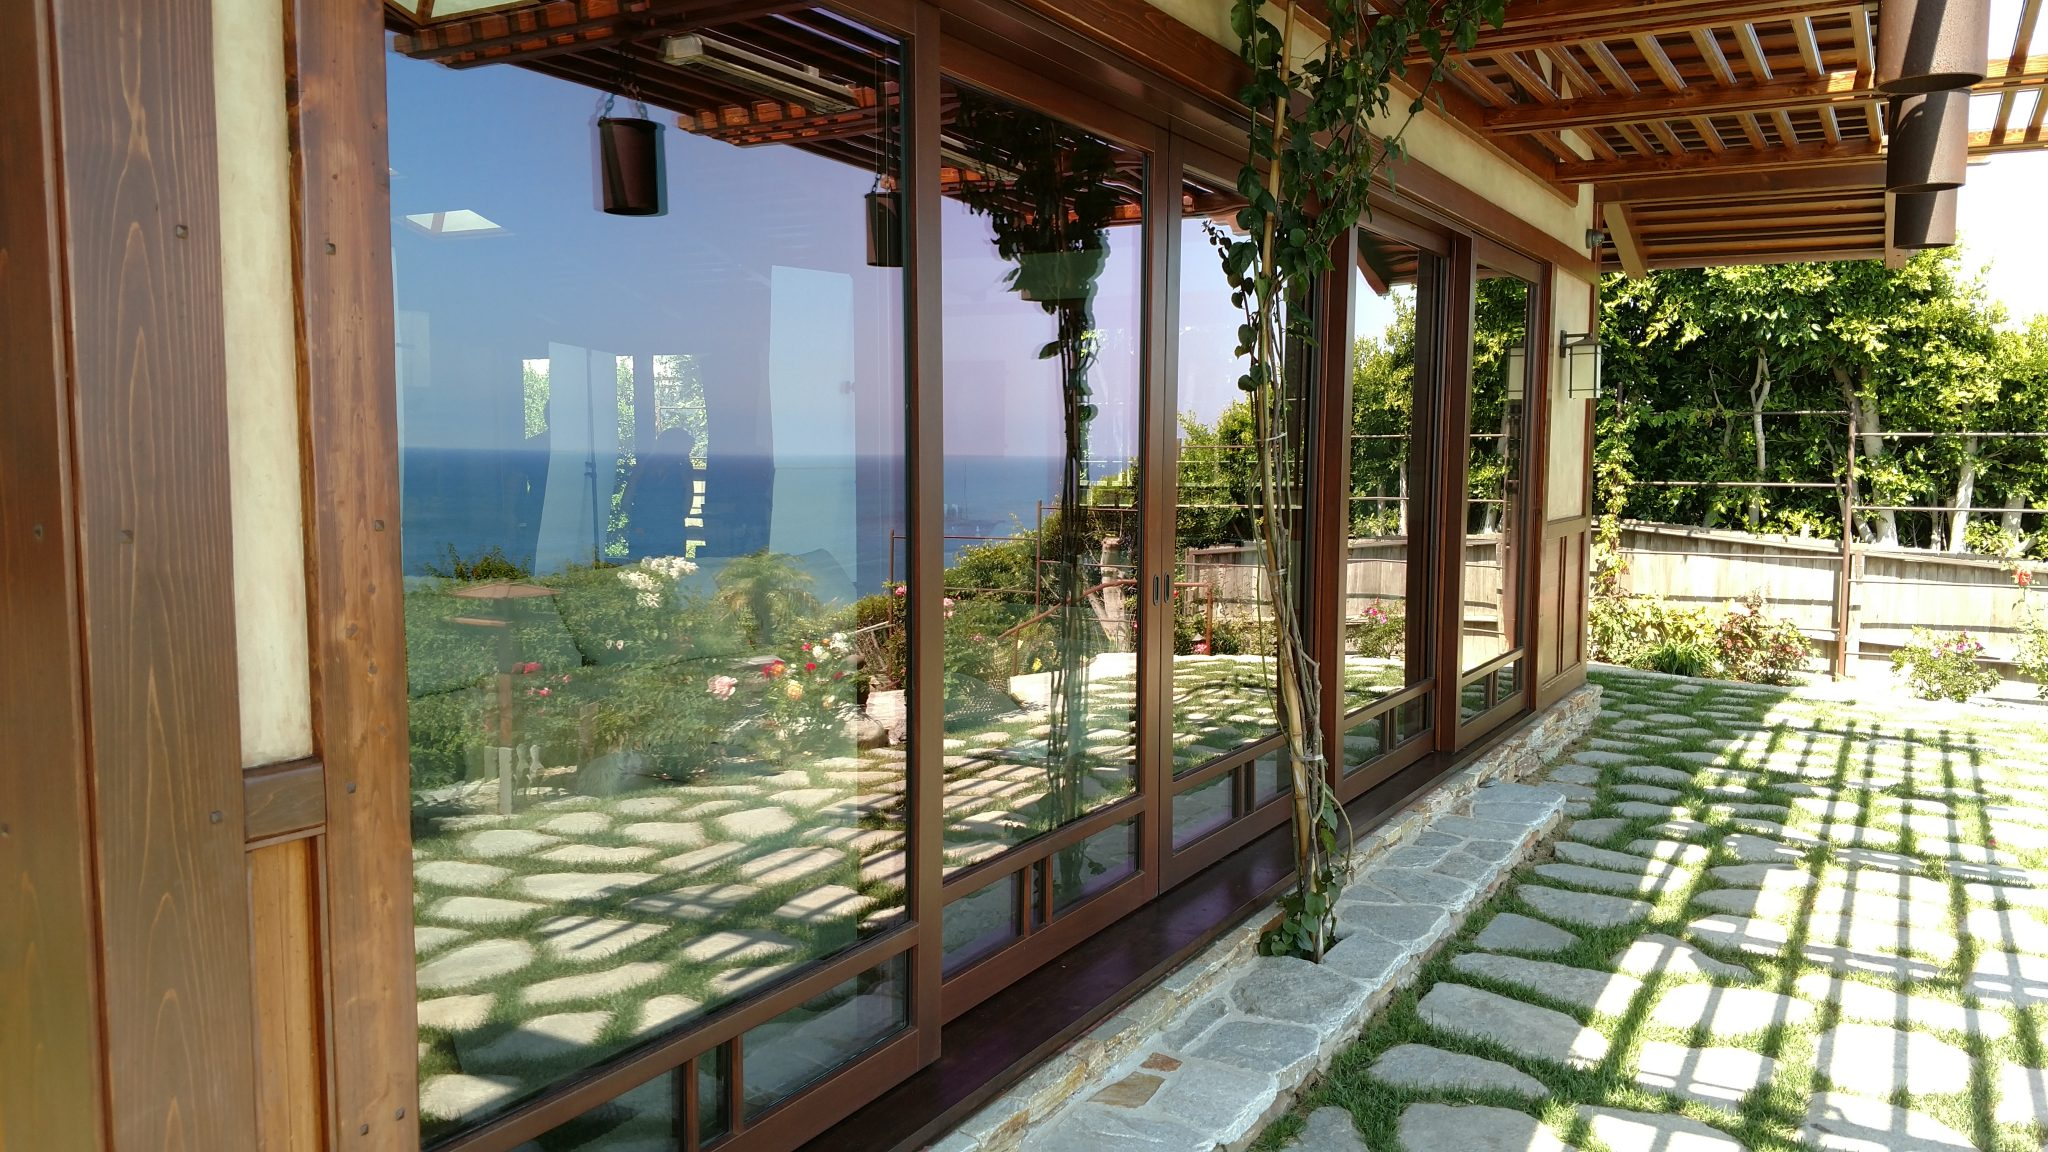 A custom wood lift slide door system by Veranda View